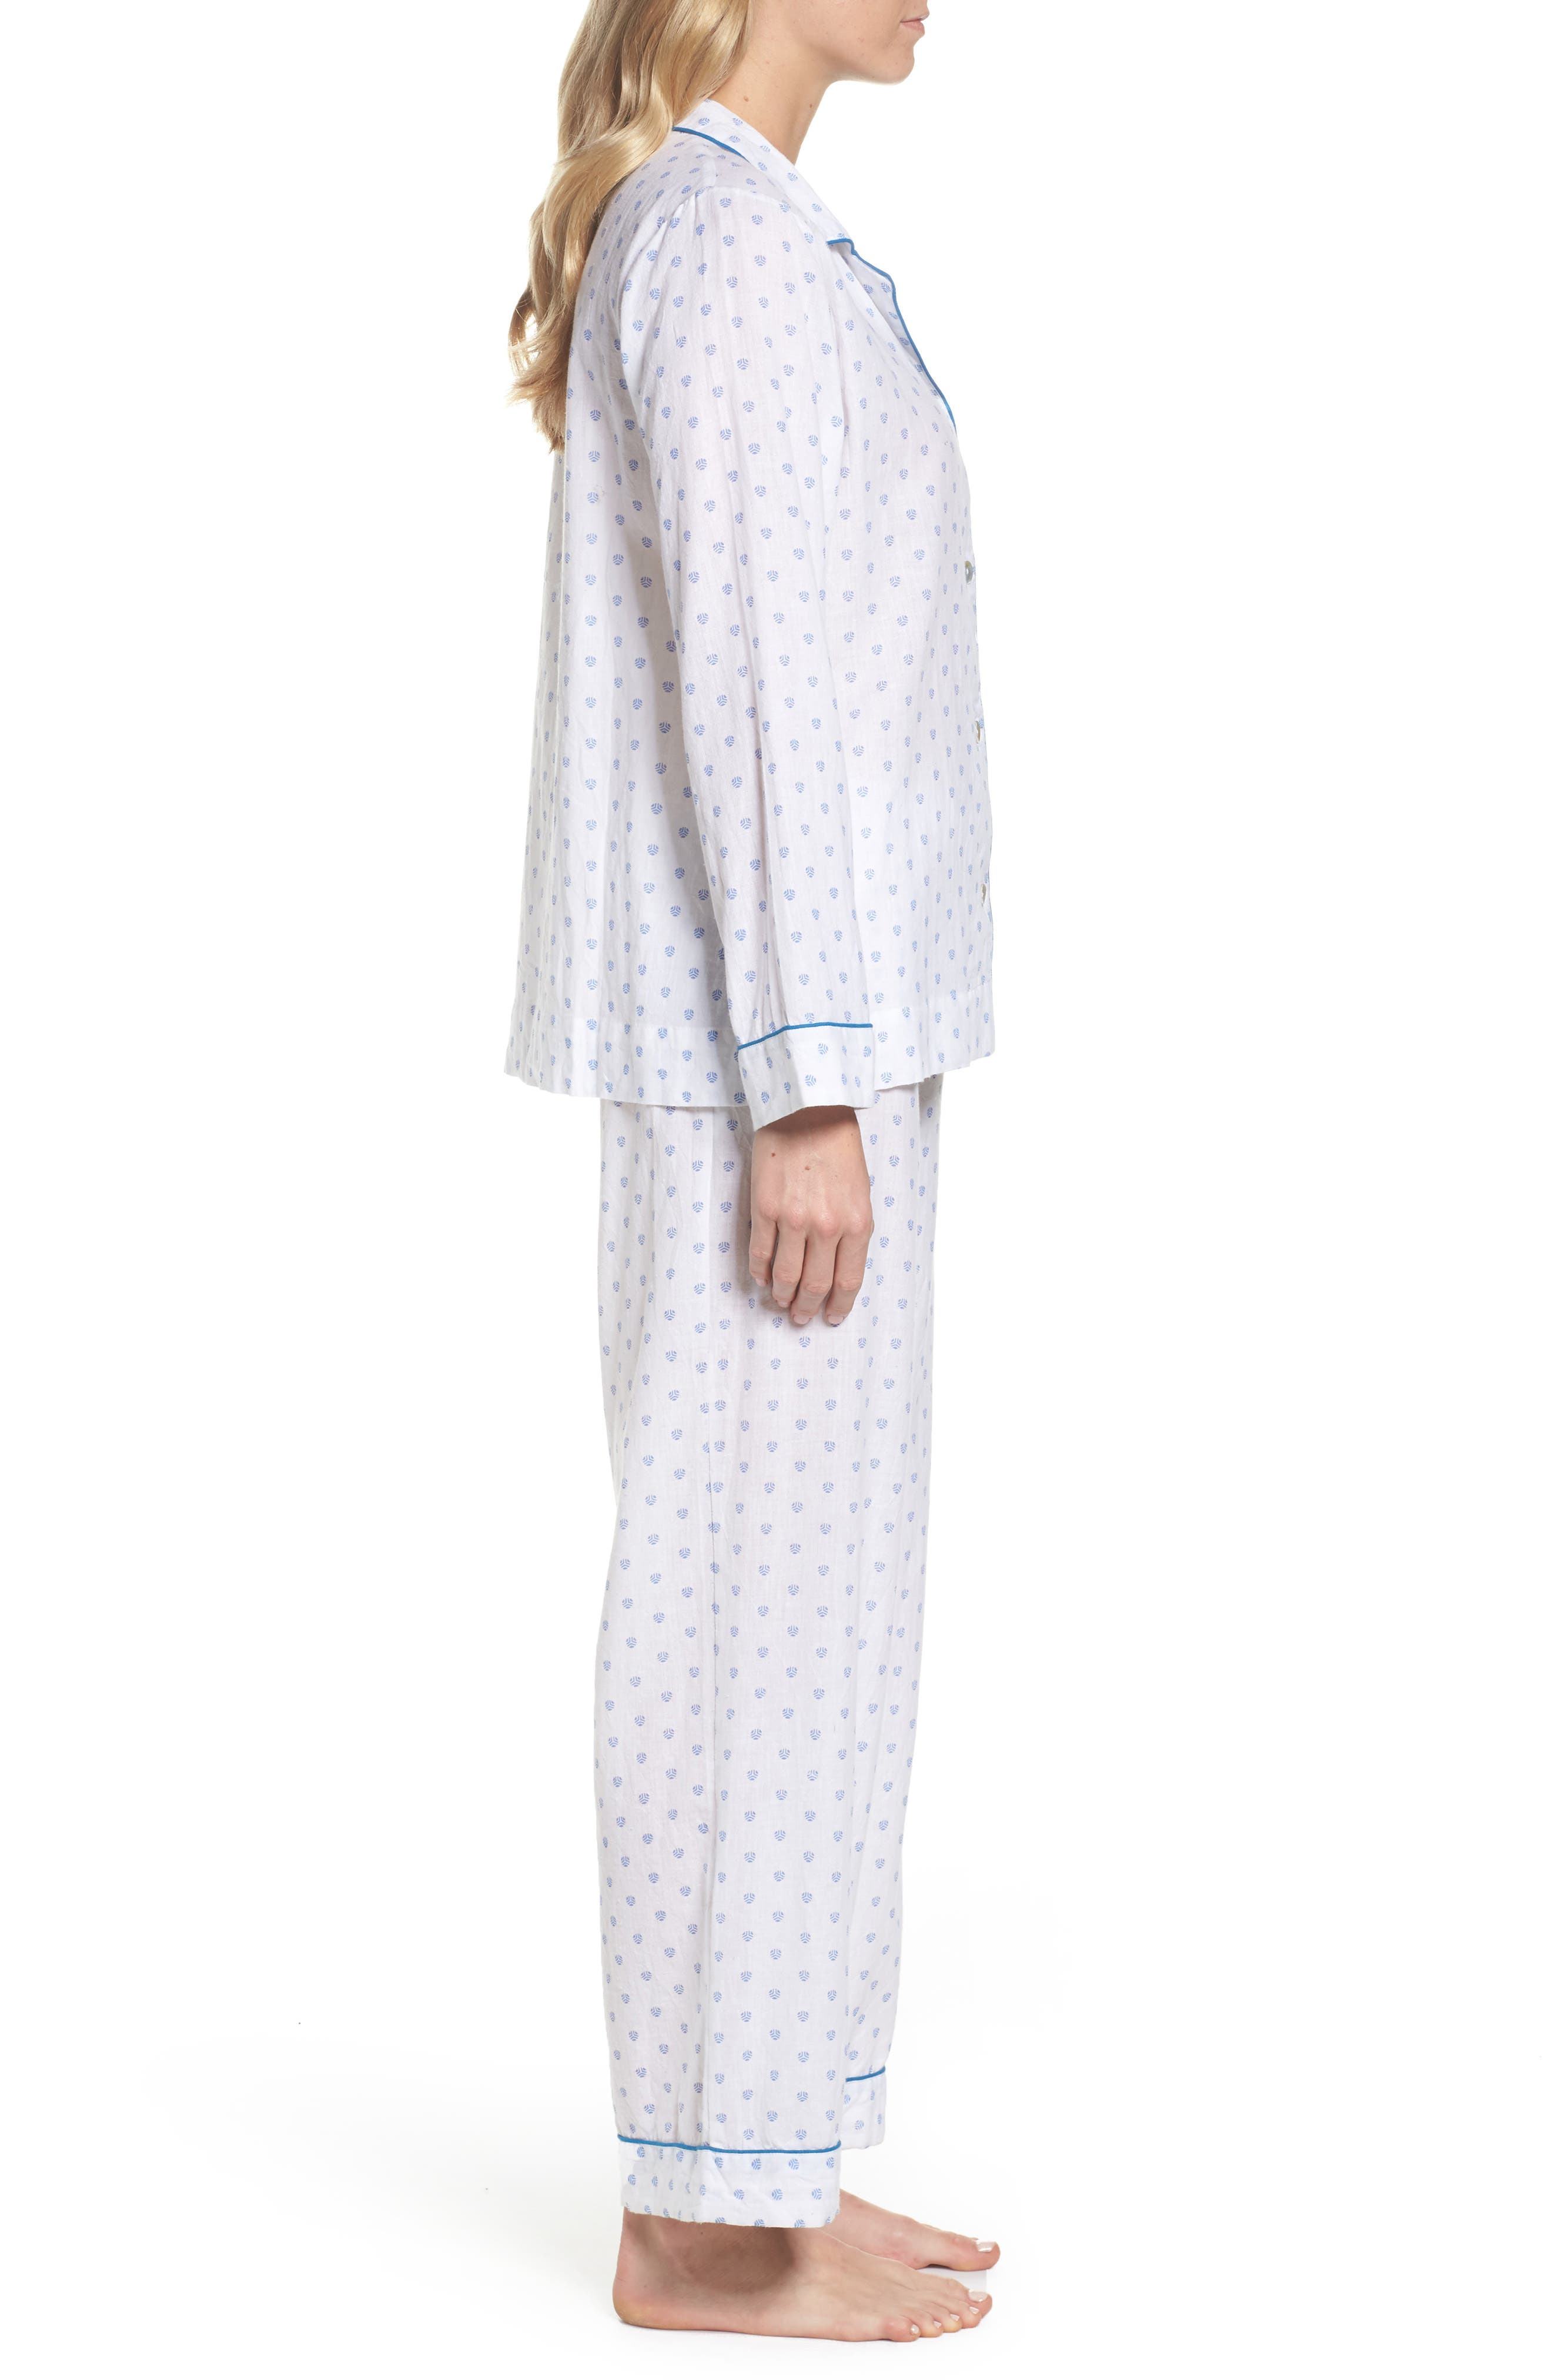 Washed Cotton Pajamas,                             Alternate thumbnail 3, color,                             100